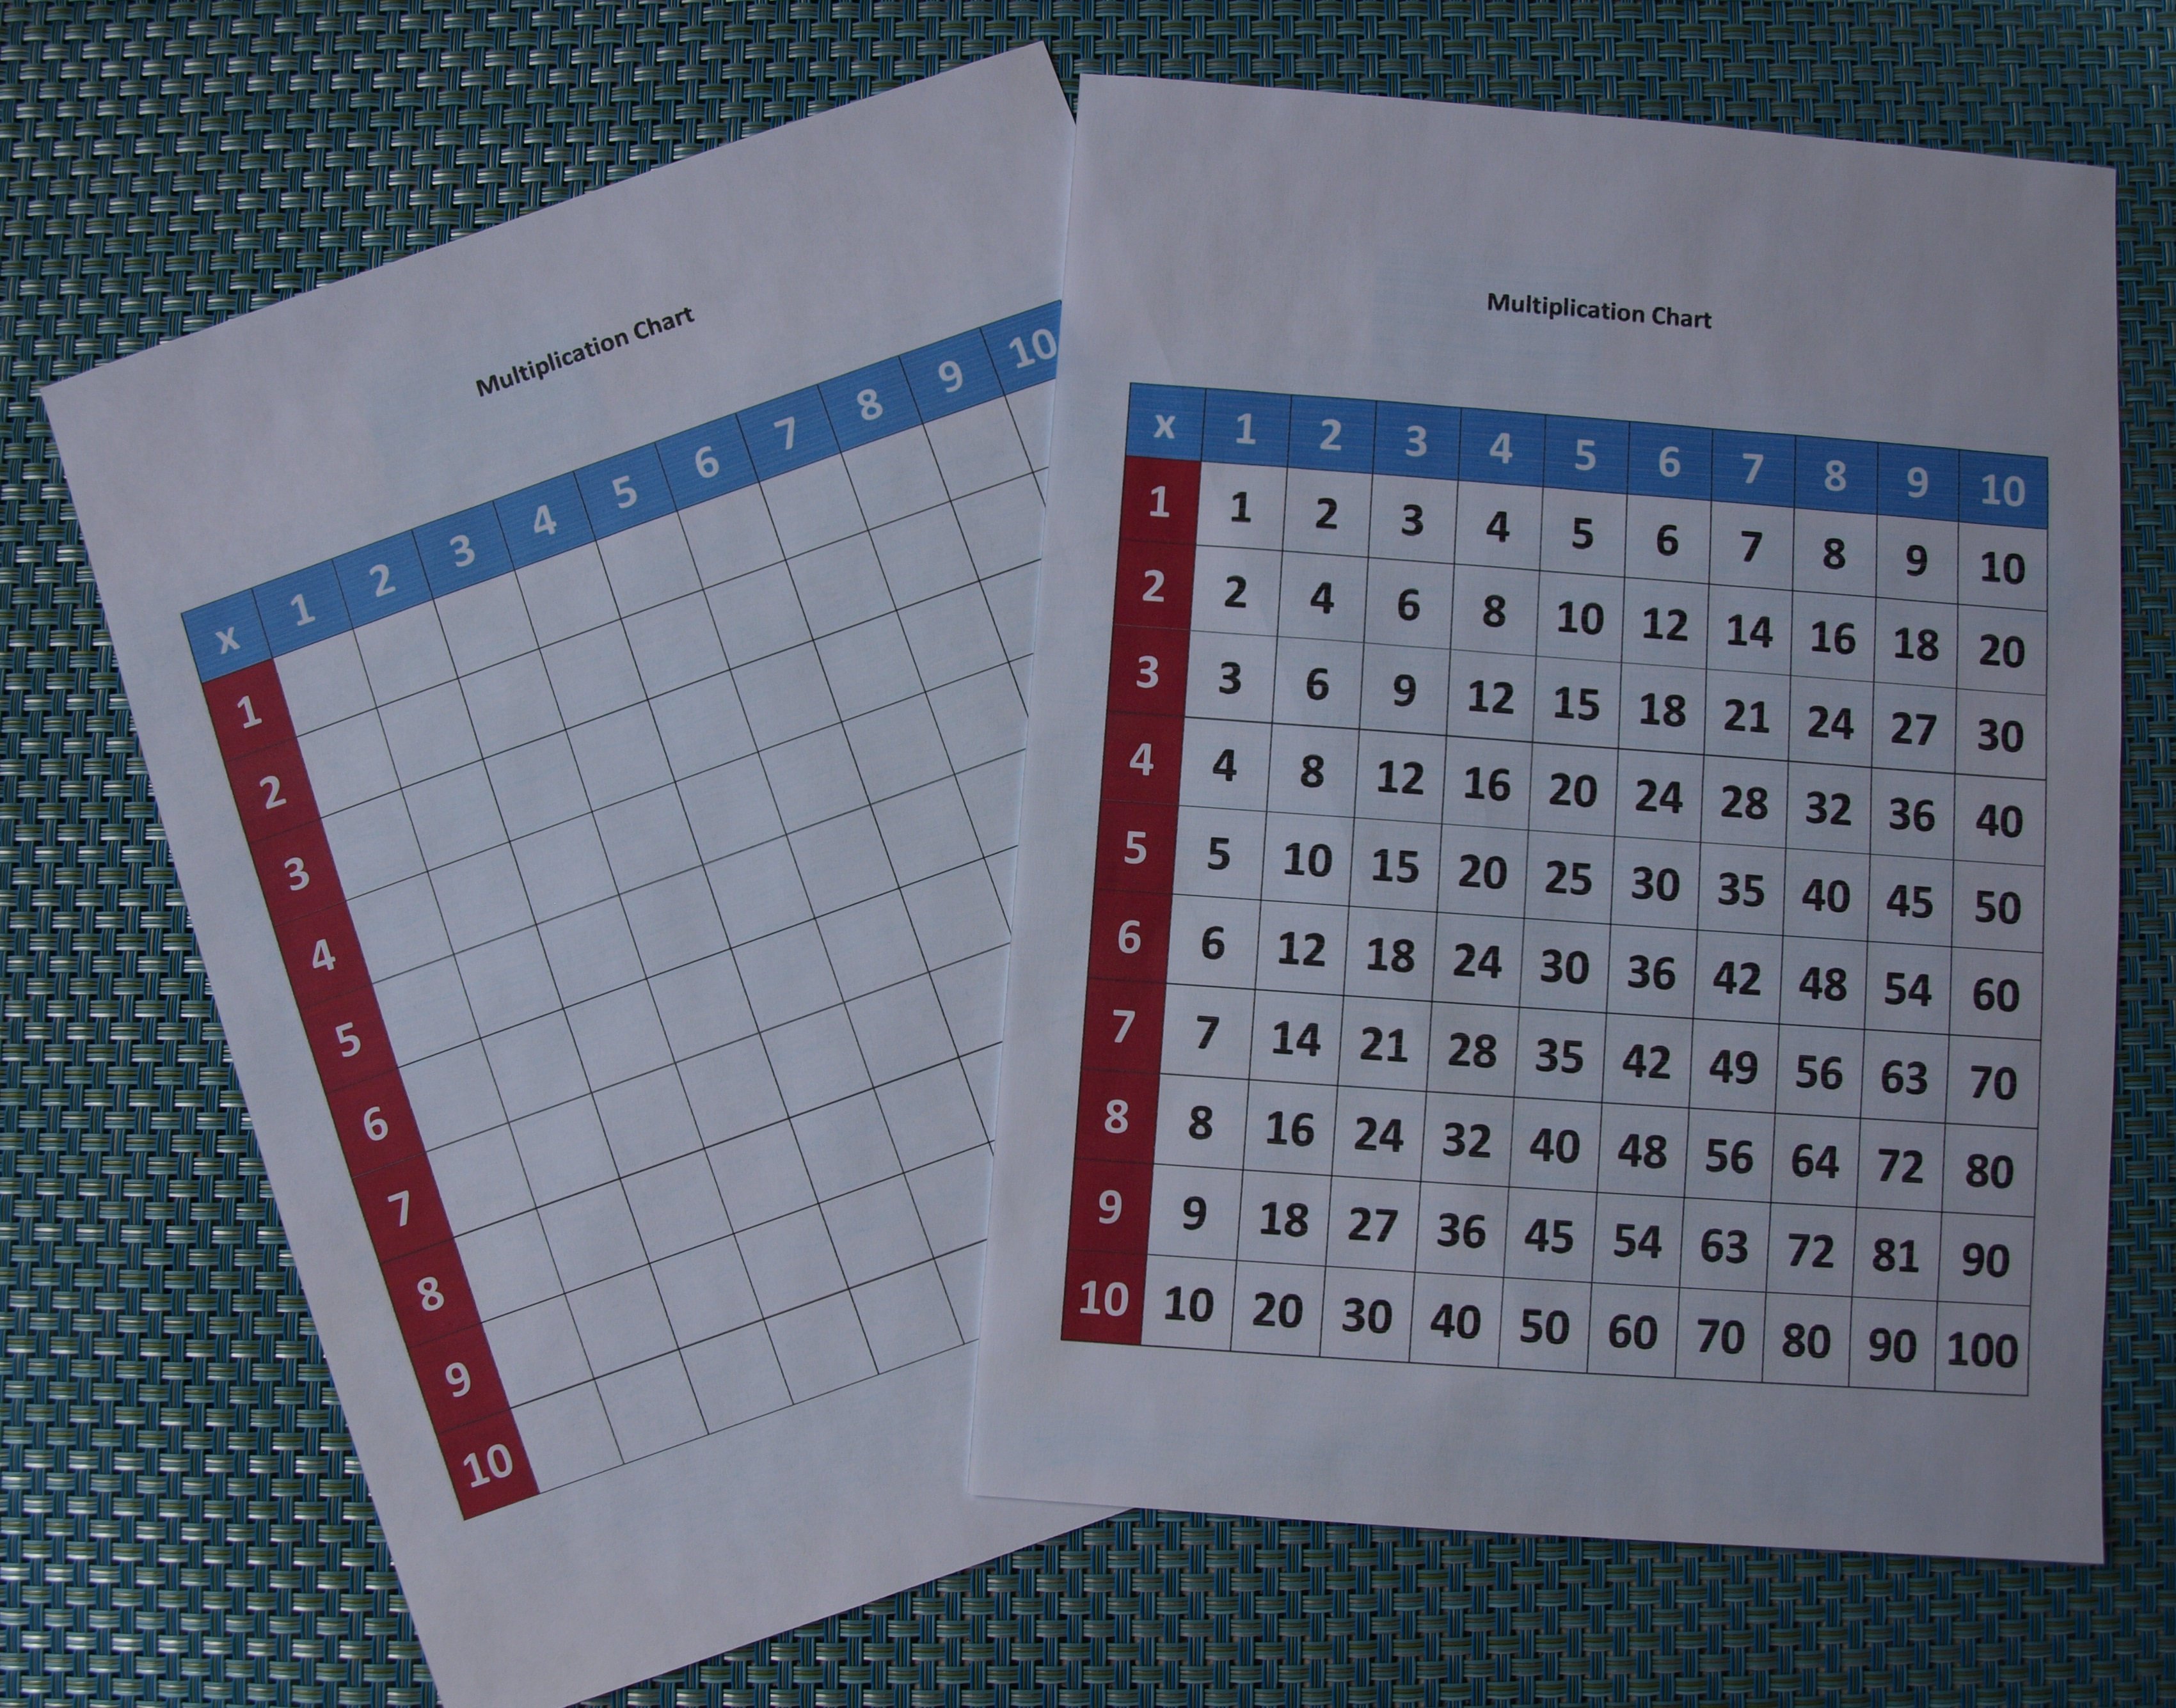 Free multiplication charts for practice or reference